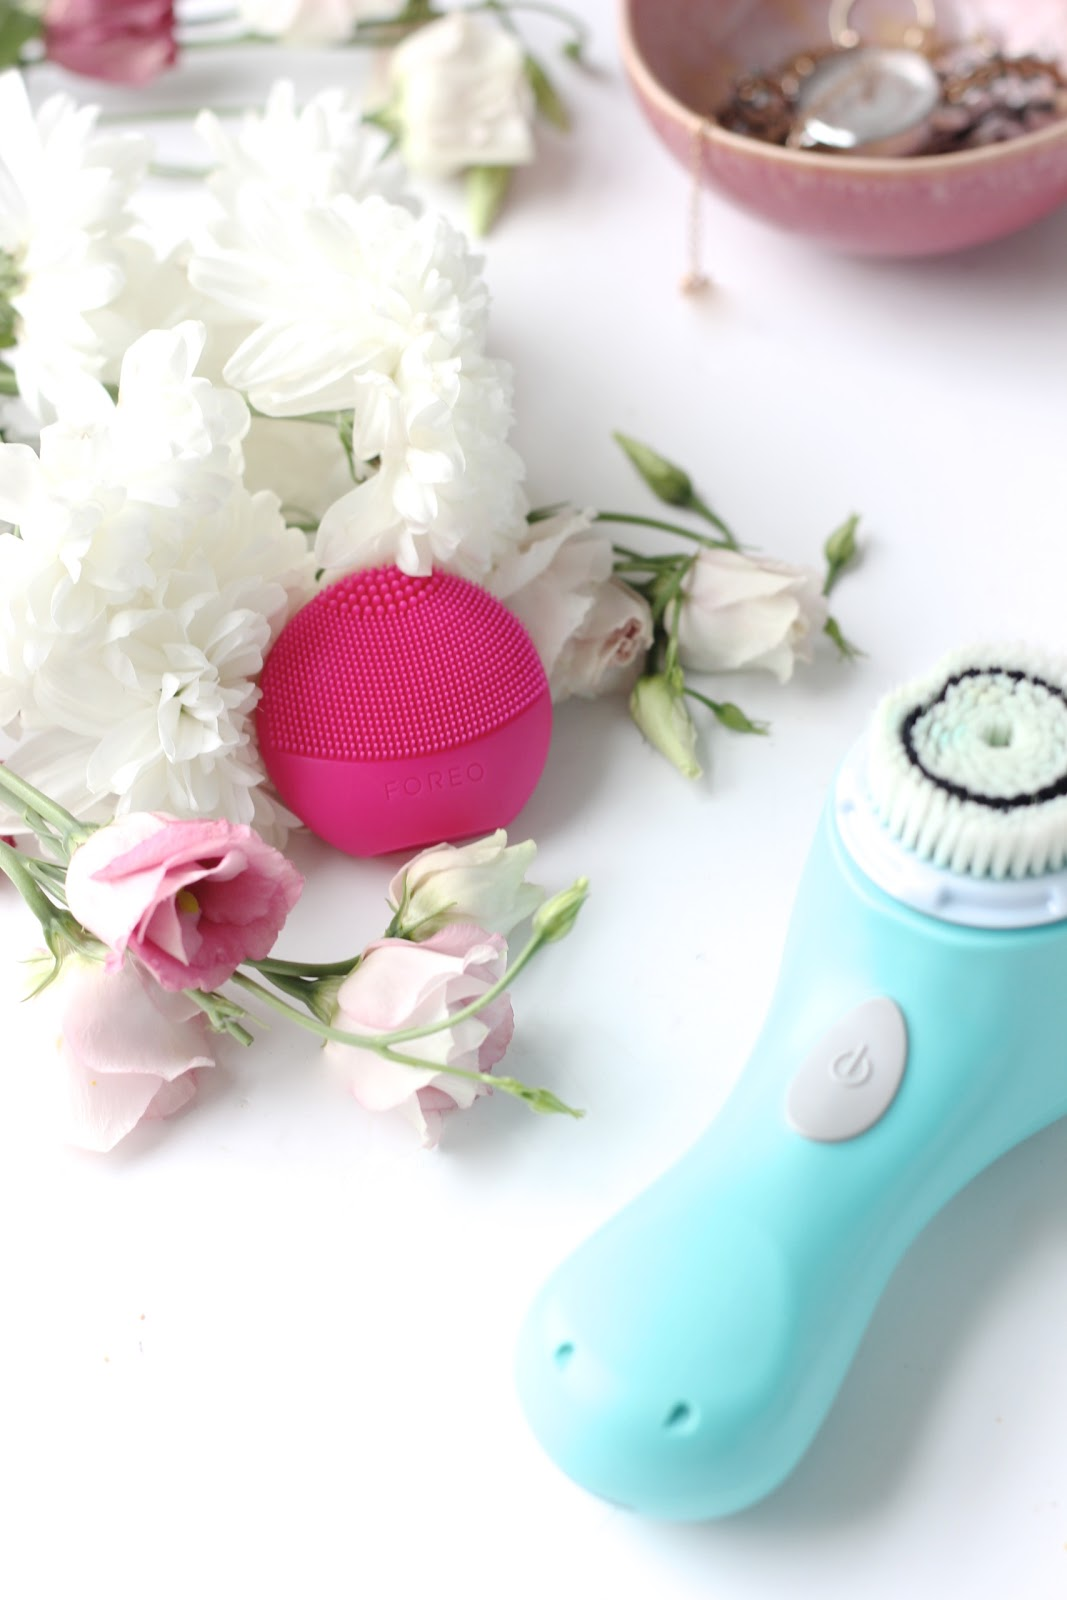 Foreo Luna vs Clarisonic: The Best Cleansing Device For Your Skin?